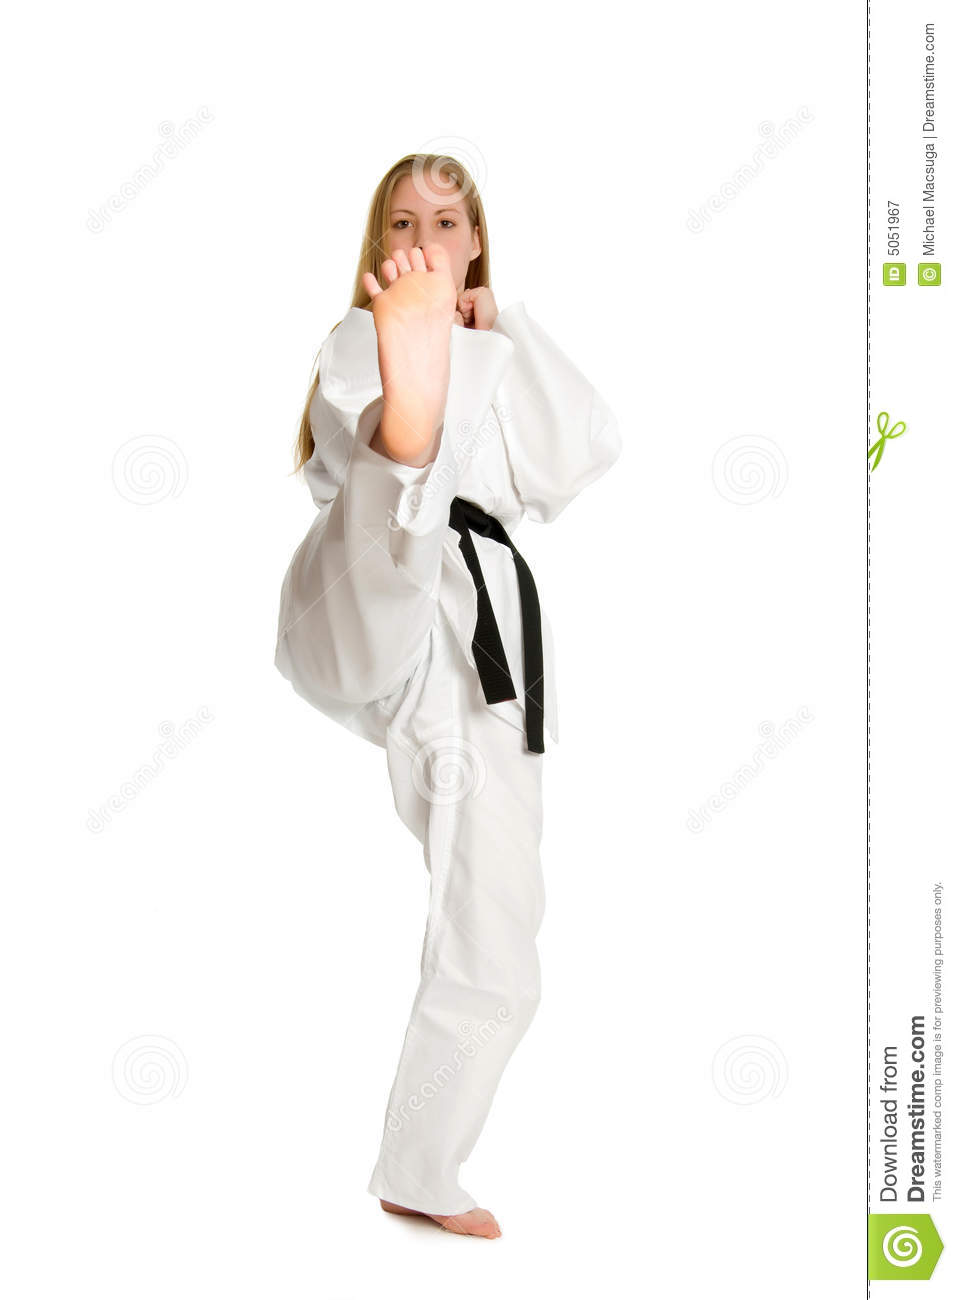 Martial Arts Woman Royalty Free Stock Photography  Image